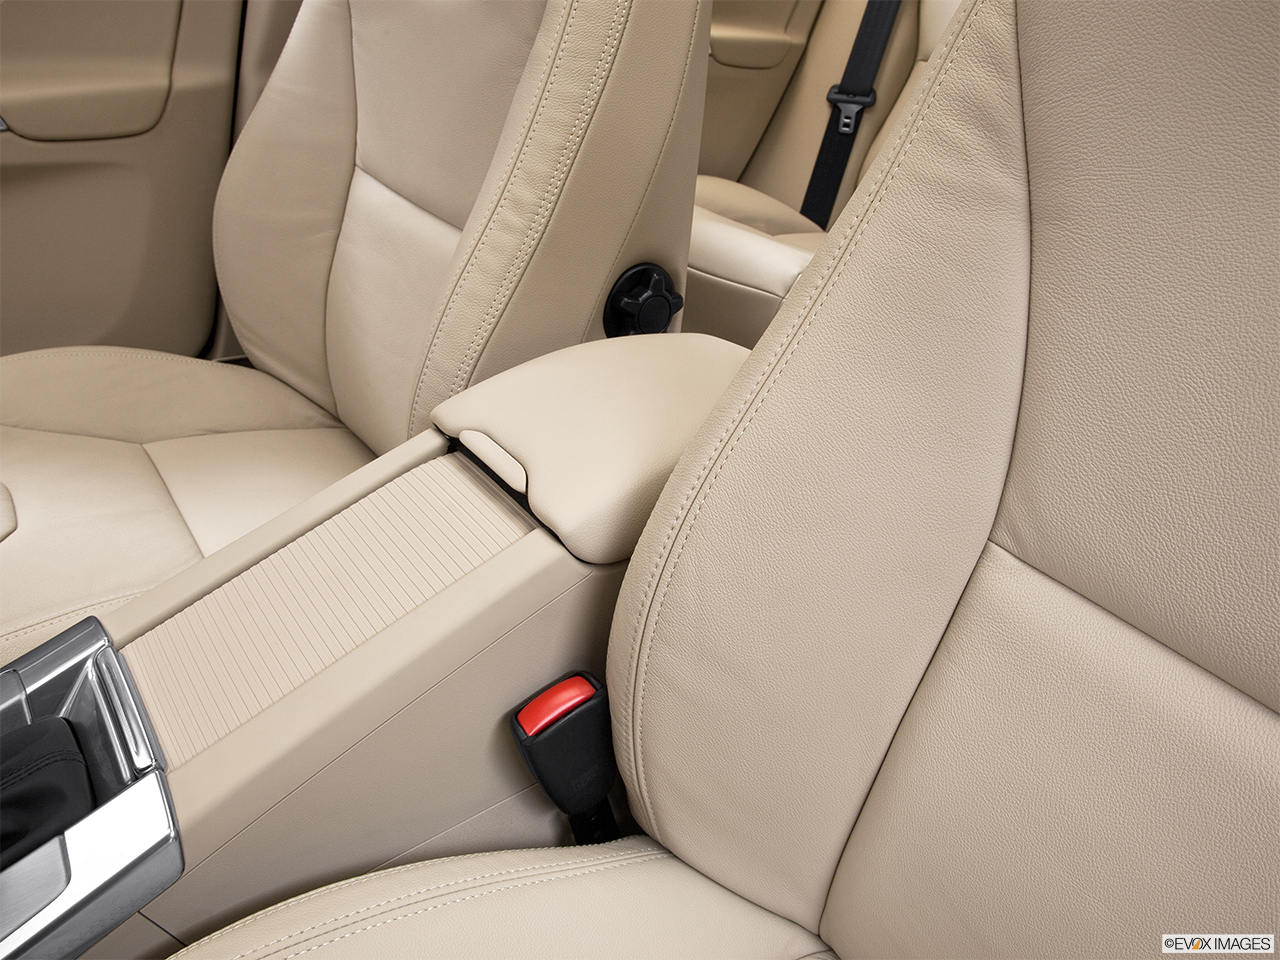 2013 Volvo XC60 3.2 FWD Premier Plus Front center console with closed lid, from driver's side looking down